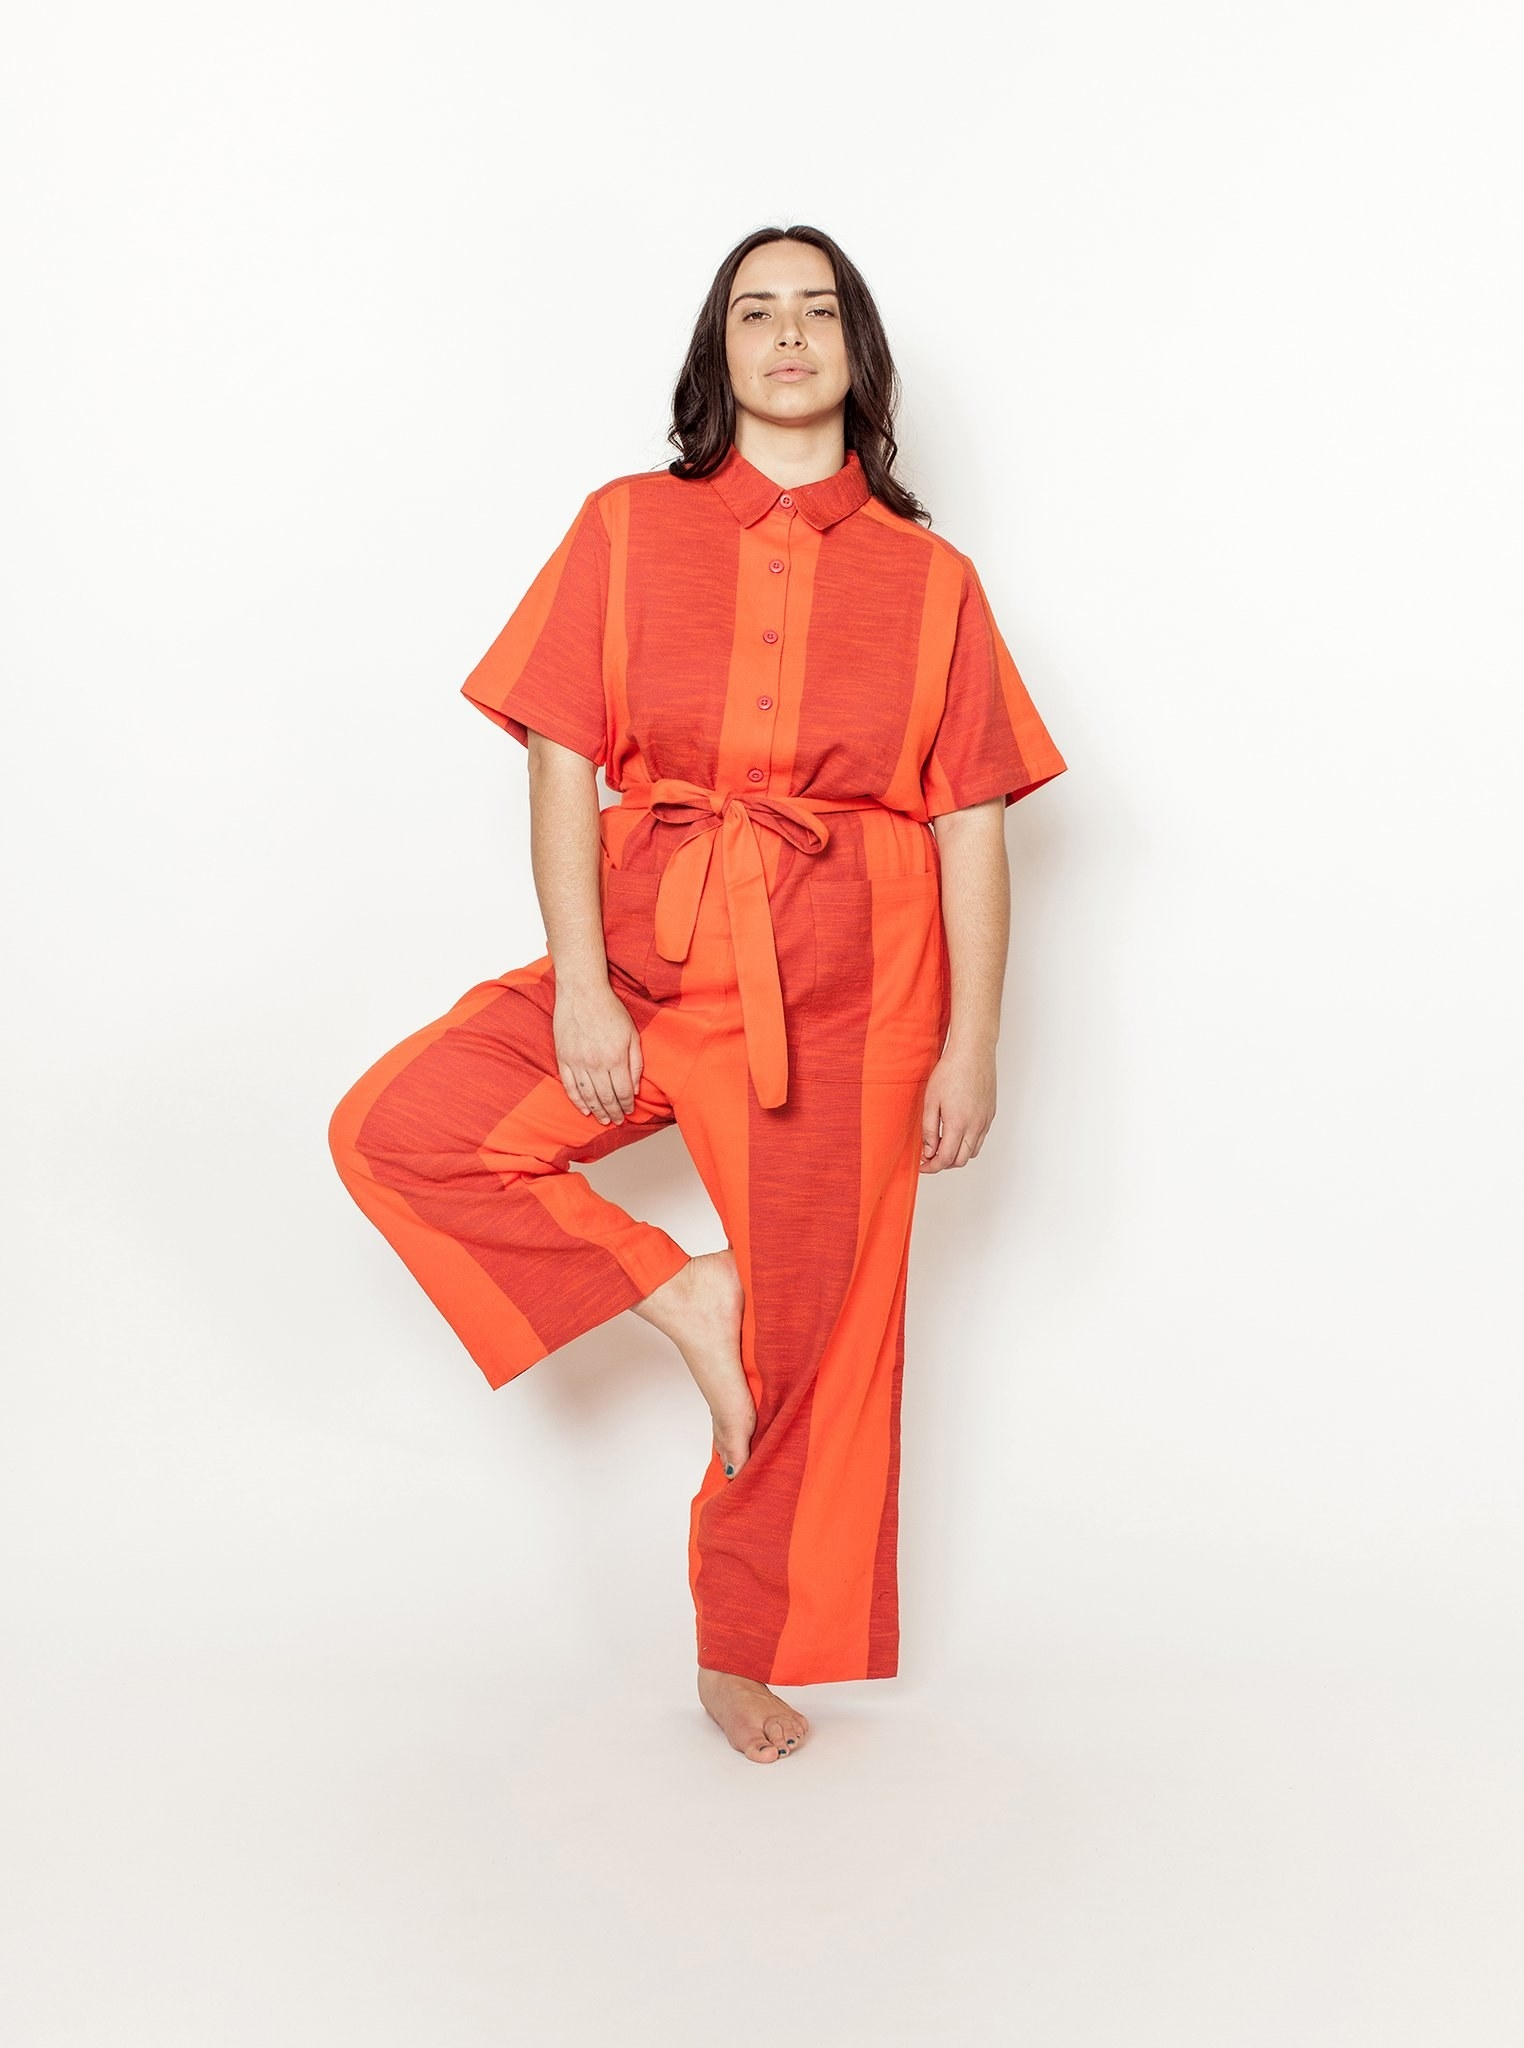 a model wearing the ernie jumpsuit in the tomato textile